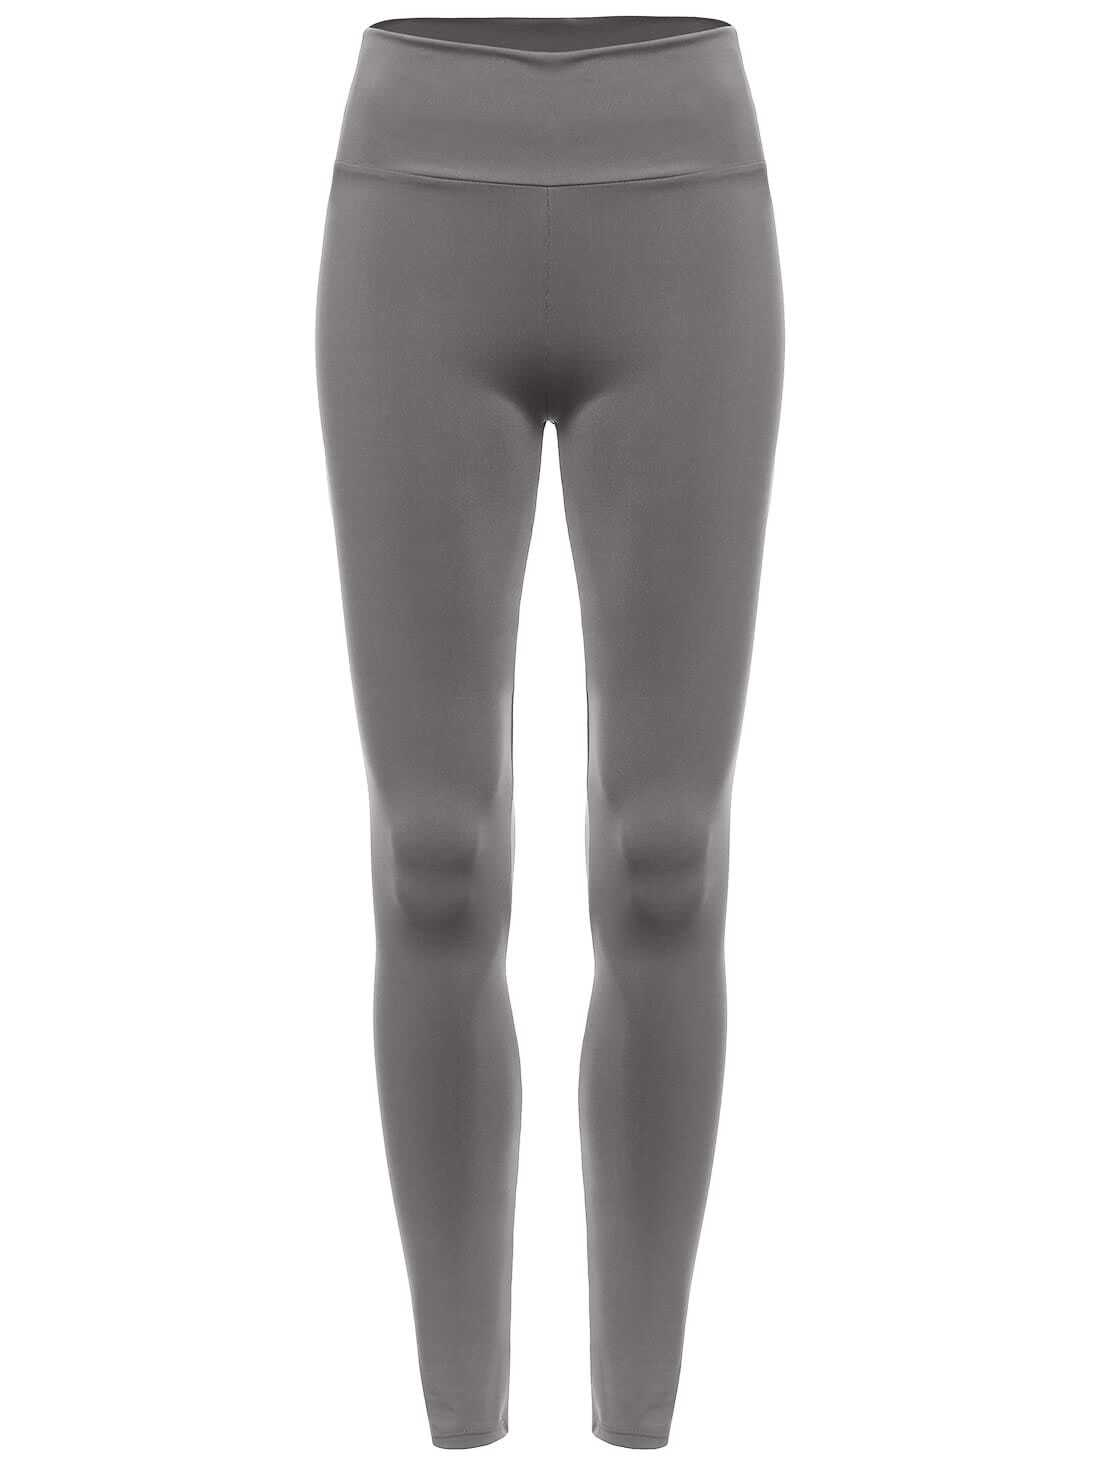 Grey Elastic Waist Slim LeggingsGrey Elastic Waist Slim Leggings<br><br>color: Grey<br>size: one-size